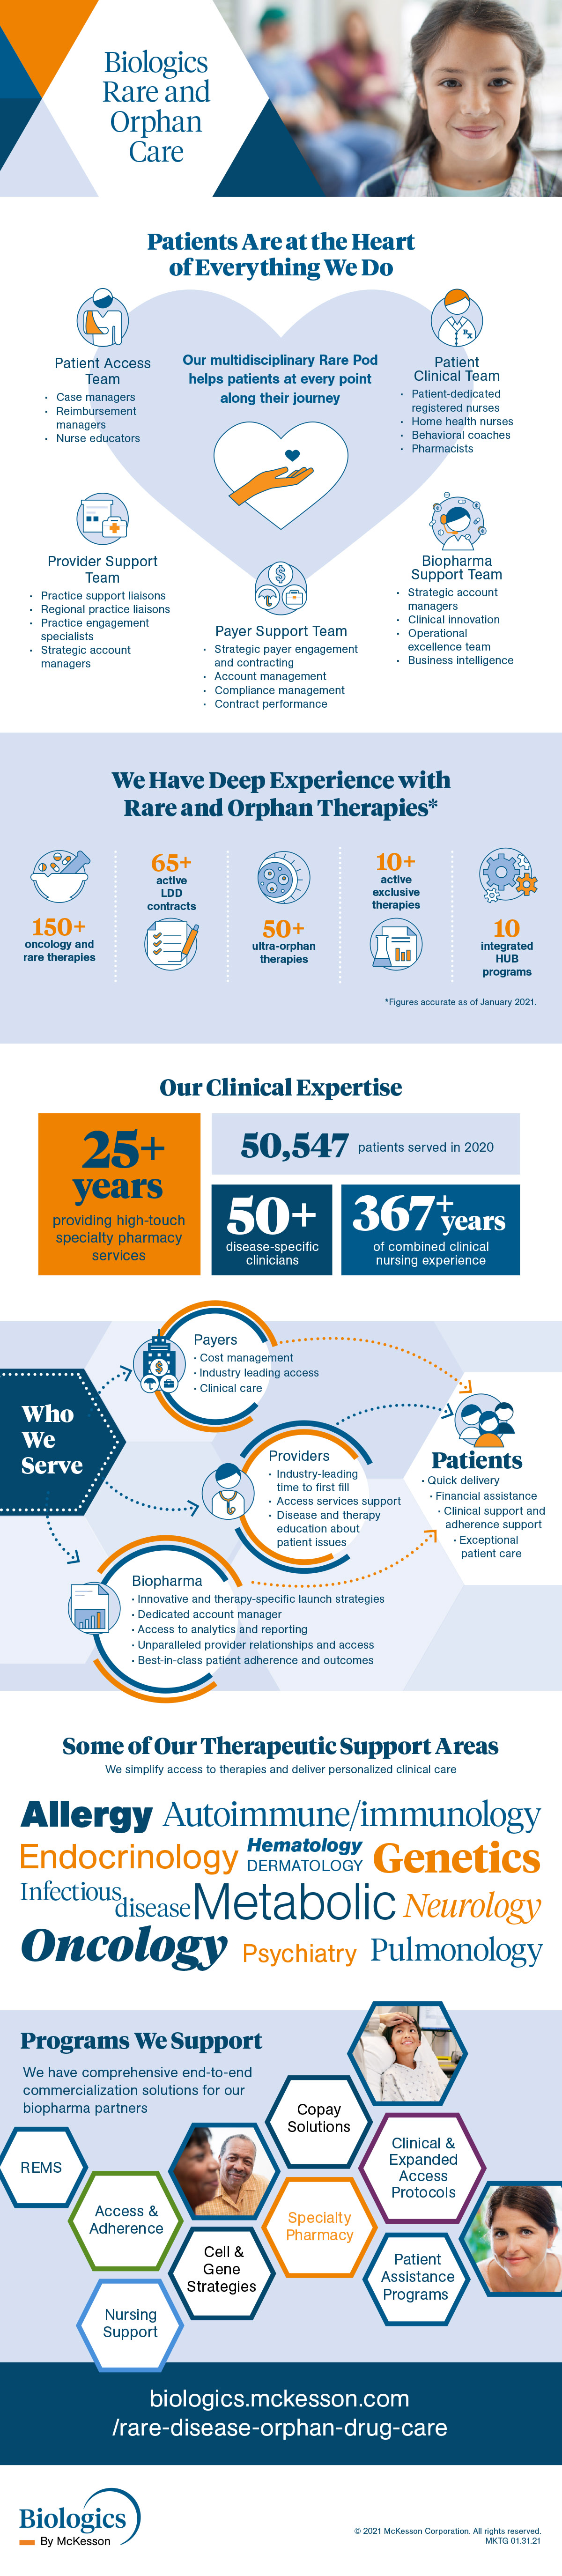 Biologics Rare Disease and Orphan Drug Care Infographic